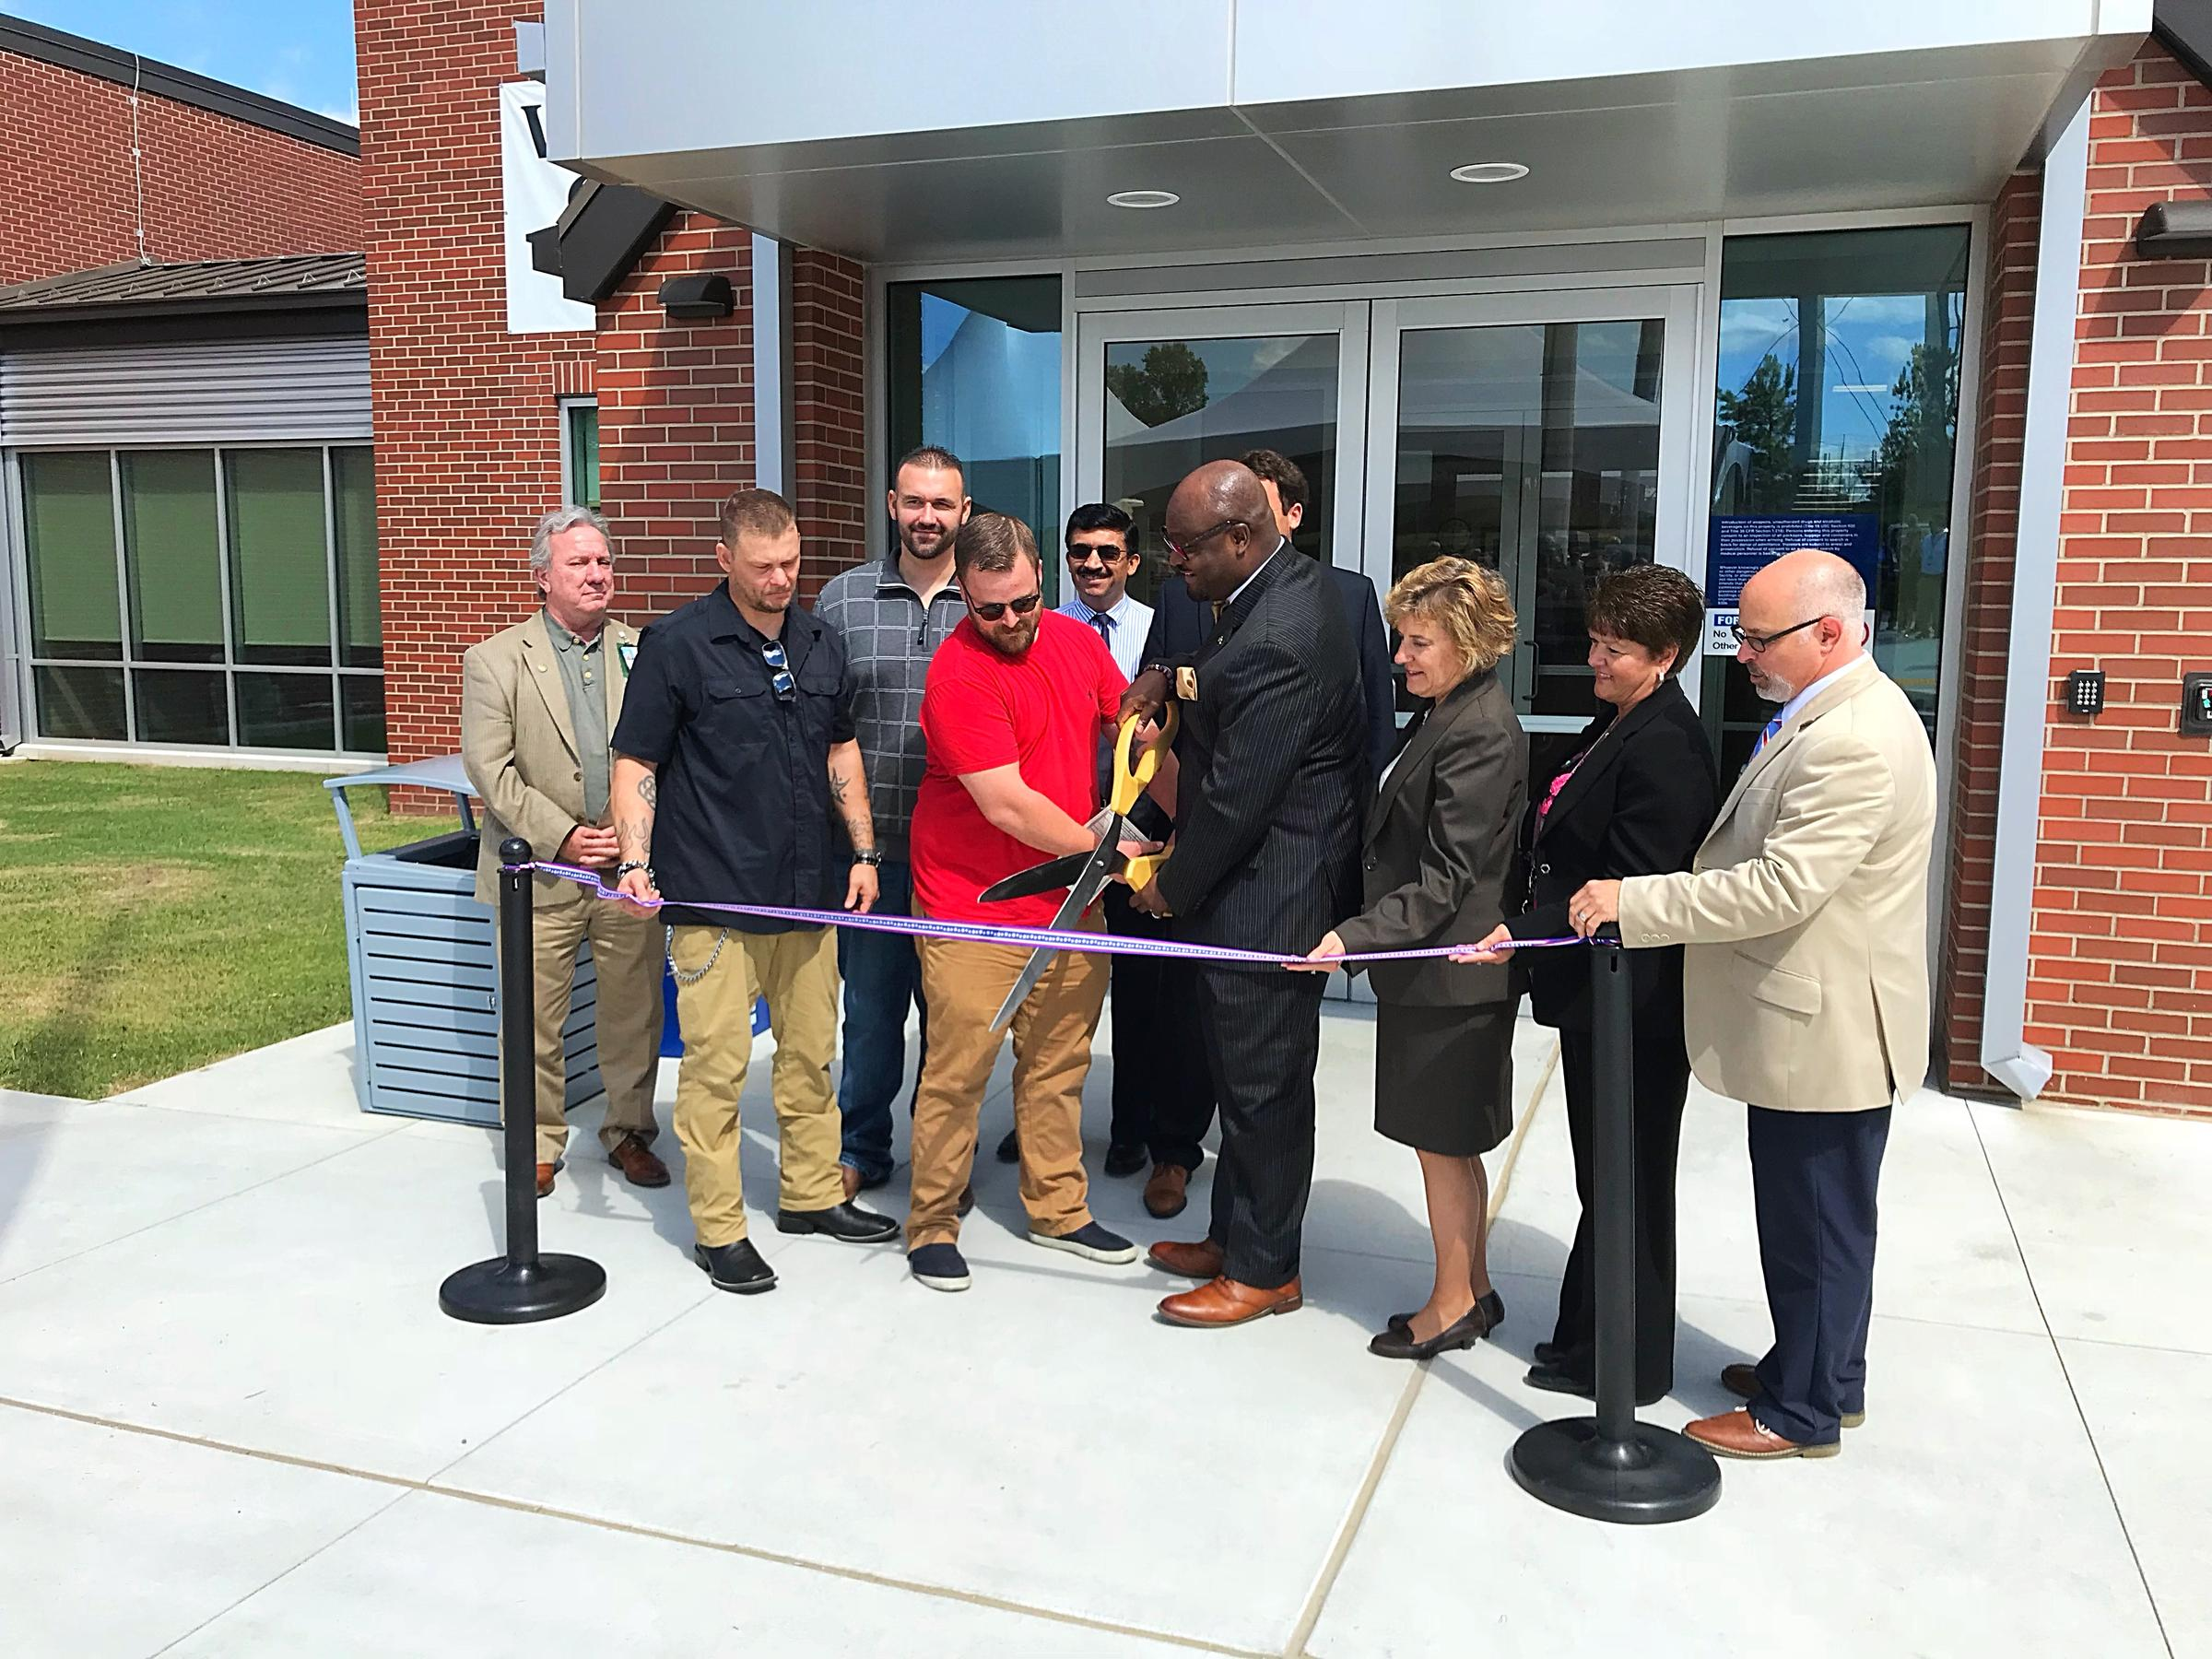 Fayetteville Va Opens Inpatient Facility To Treat Substance Abuse